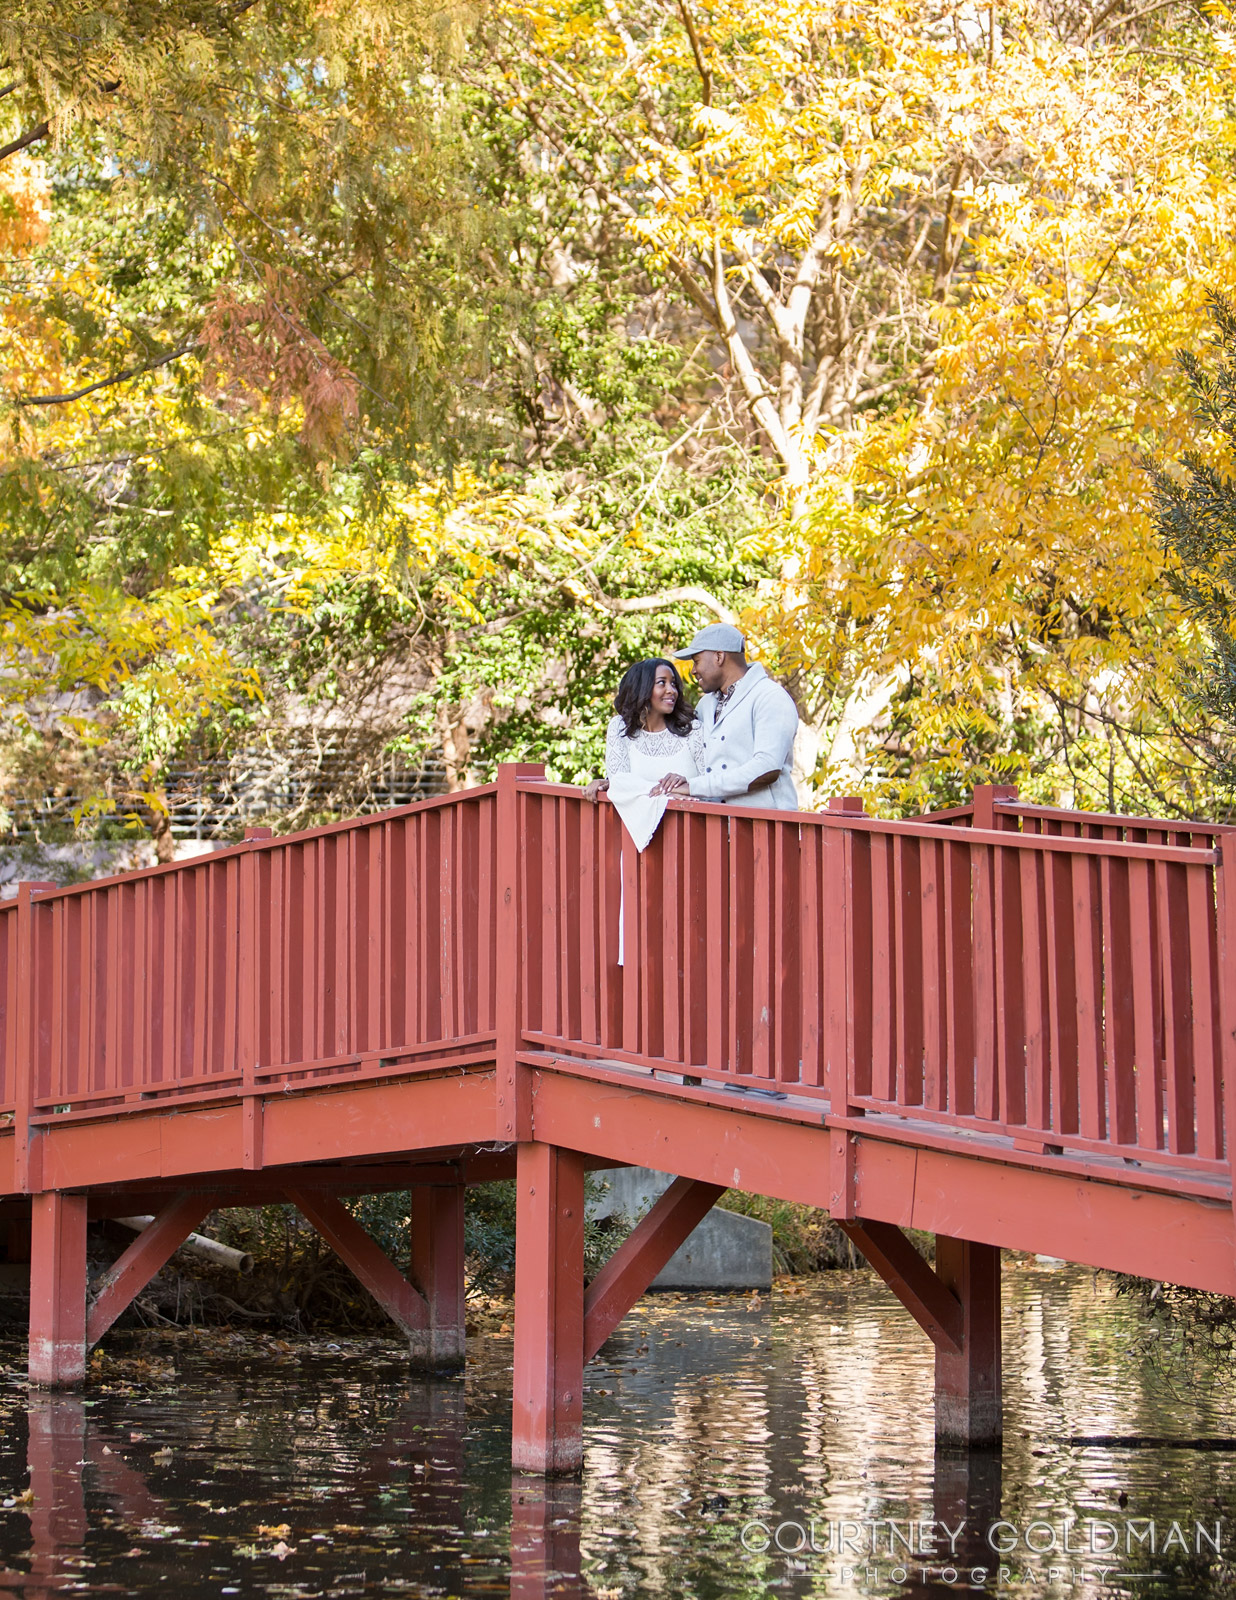 Atlanta-Couples-Engagement-Proposal-Photography-by-Courtney-Goldman-48.jpg